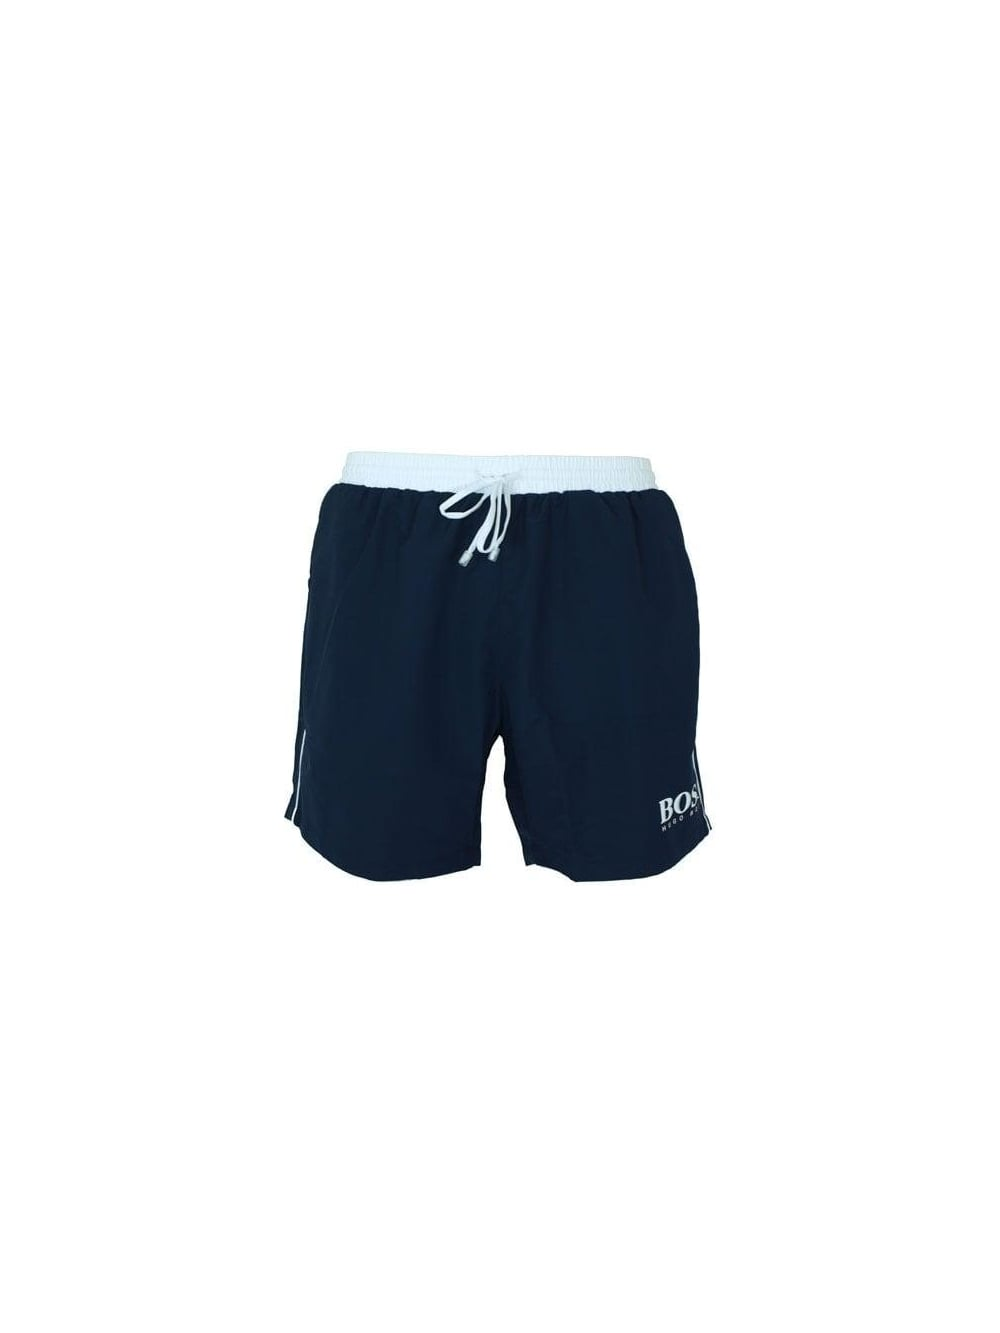 53a915dfe92d Hugo Boss Green Starfish Swimming Shorts in Navy - Buy Hugo Boss ...